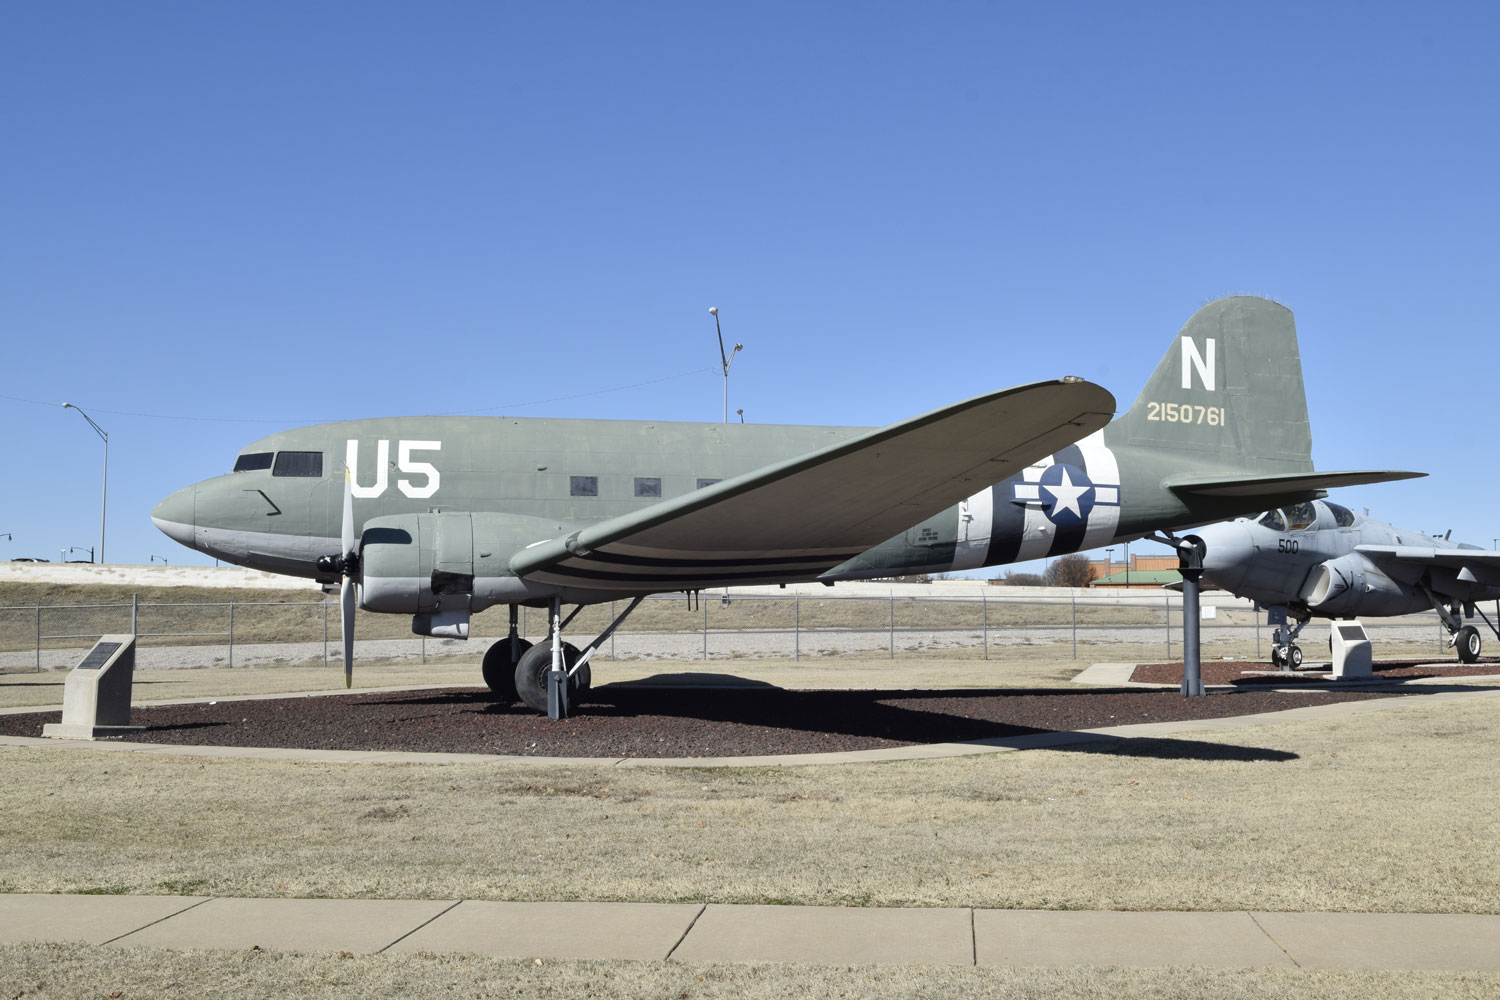 The Douglas aircraft production facility produced 5,231 C-47s in Oklahoma City on what eventually became Tinker Air Force Base.